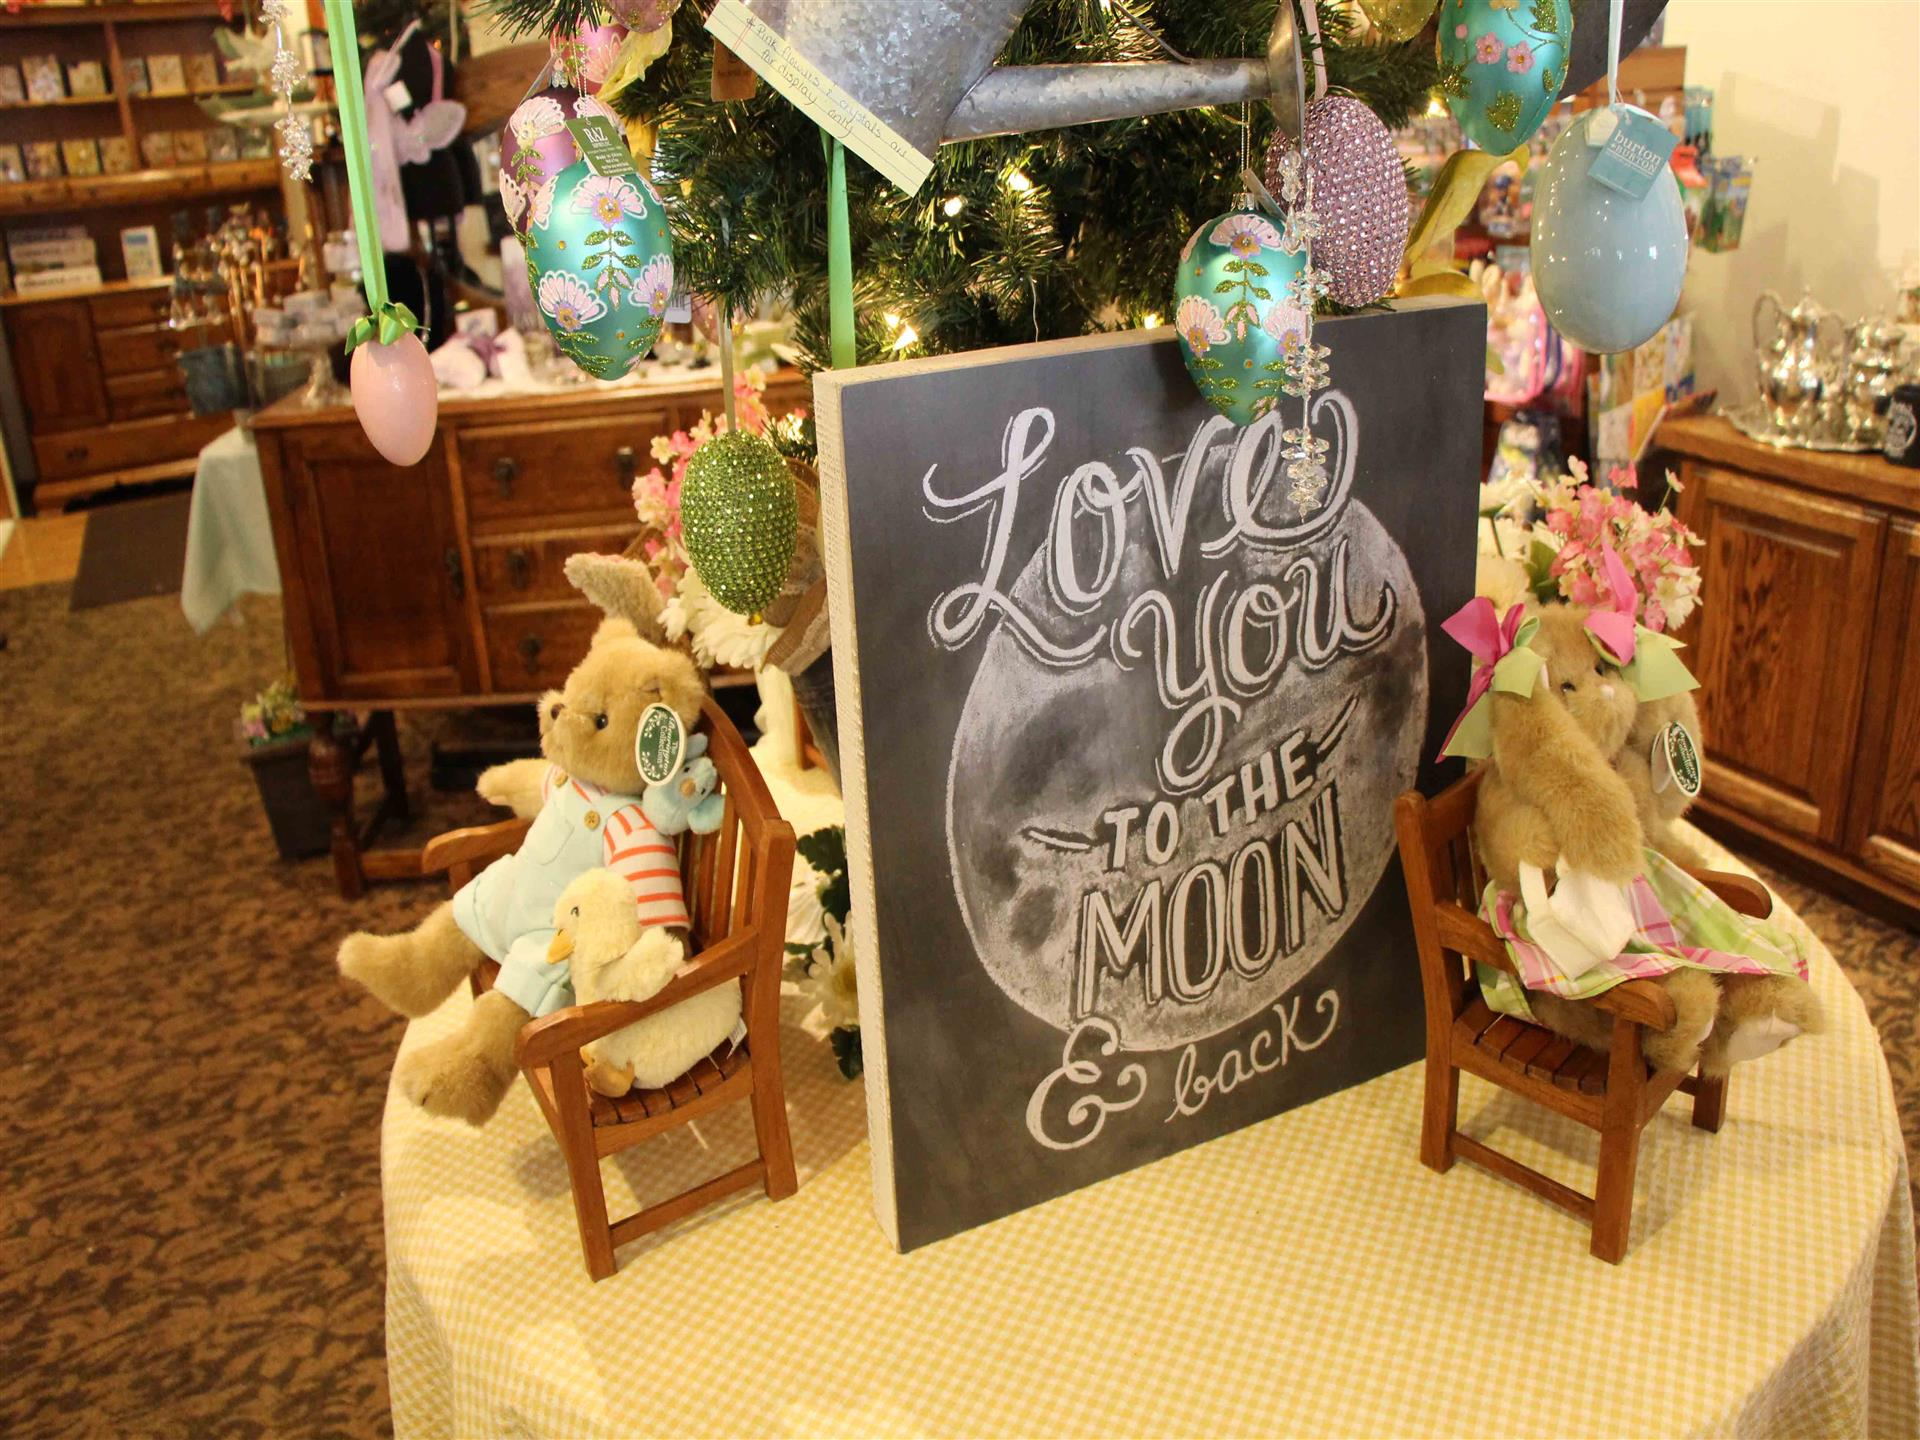 Plush bunnies in miniature chairs next to chalkboard sign that reads Love you to the moon and back